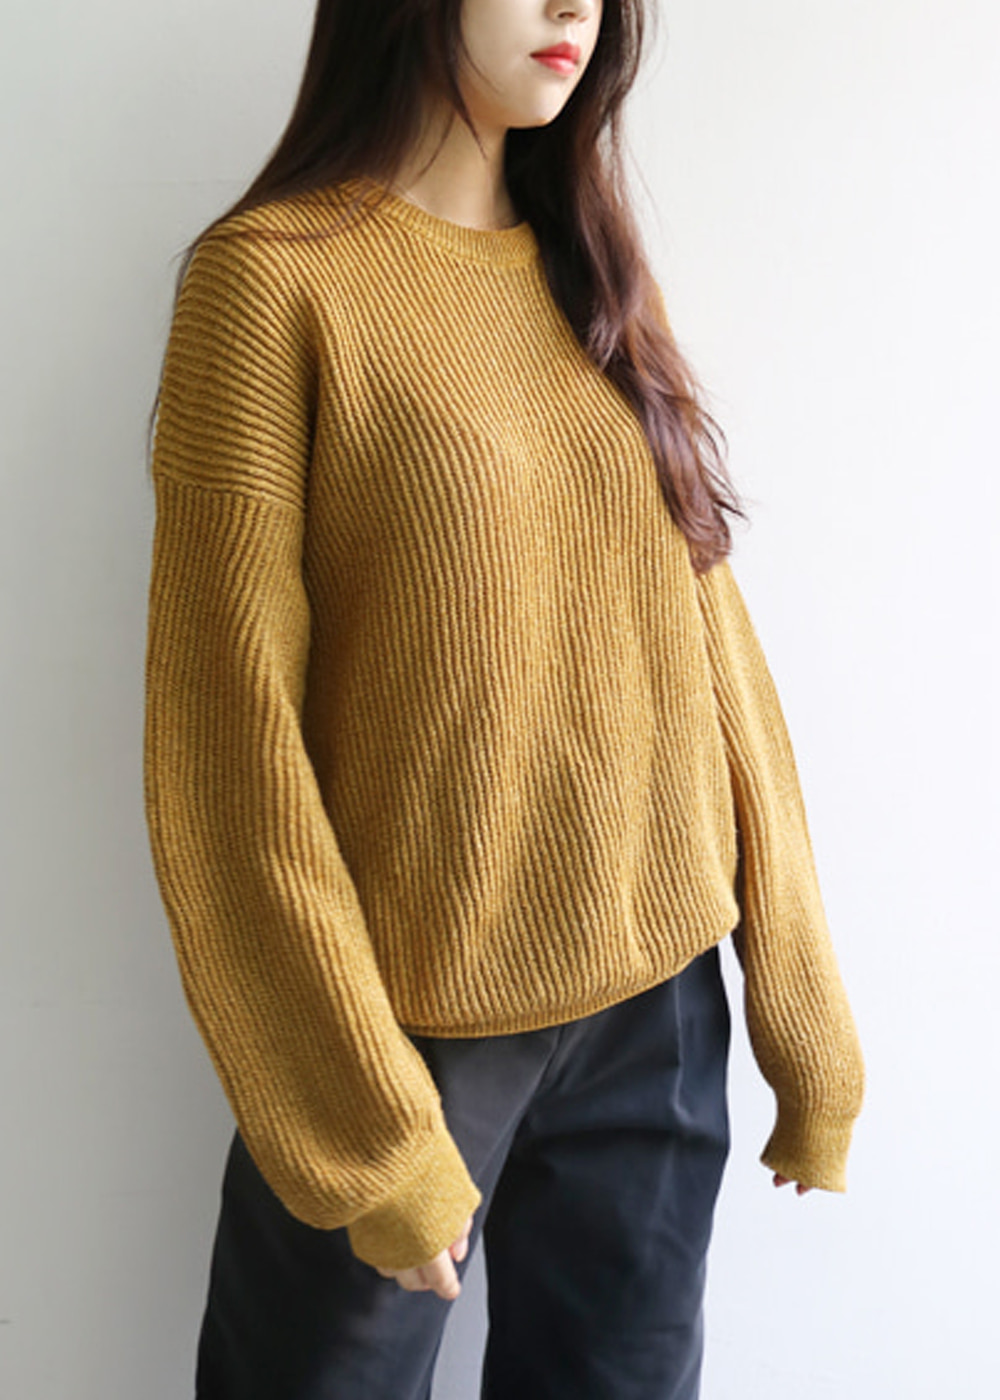 PAPER WITH 1 YARN SWEATER KNIT - mustard